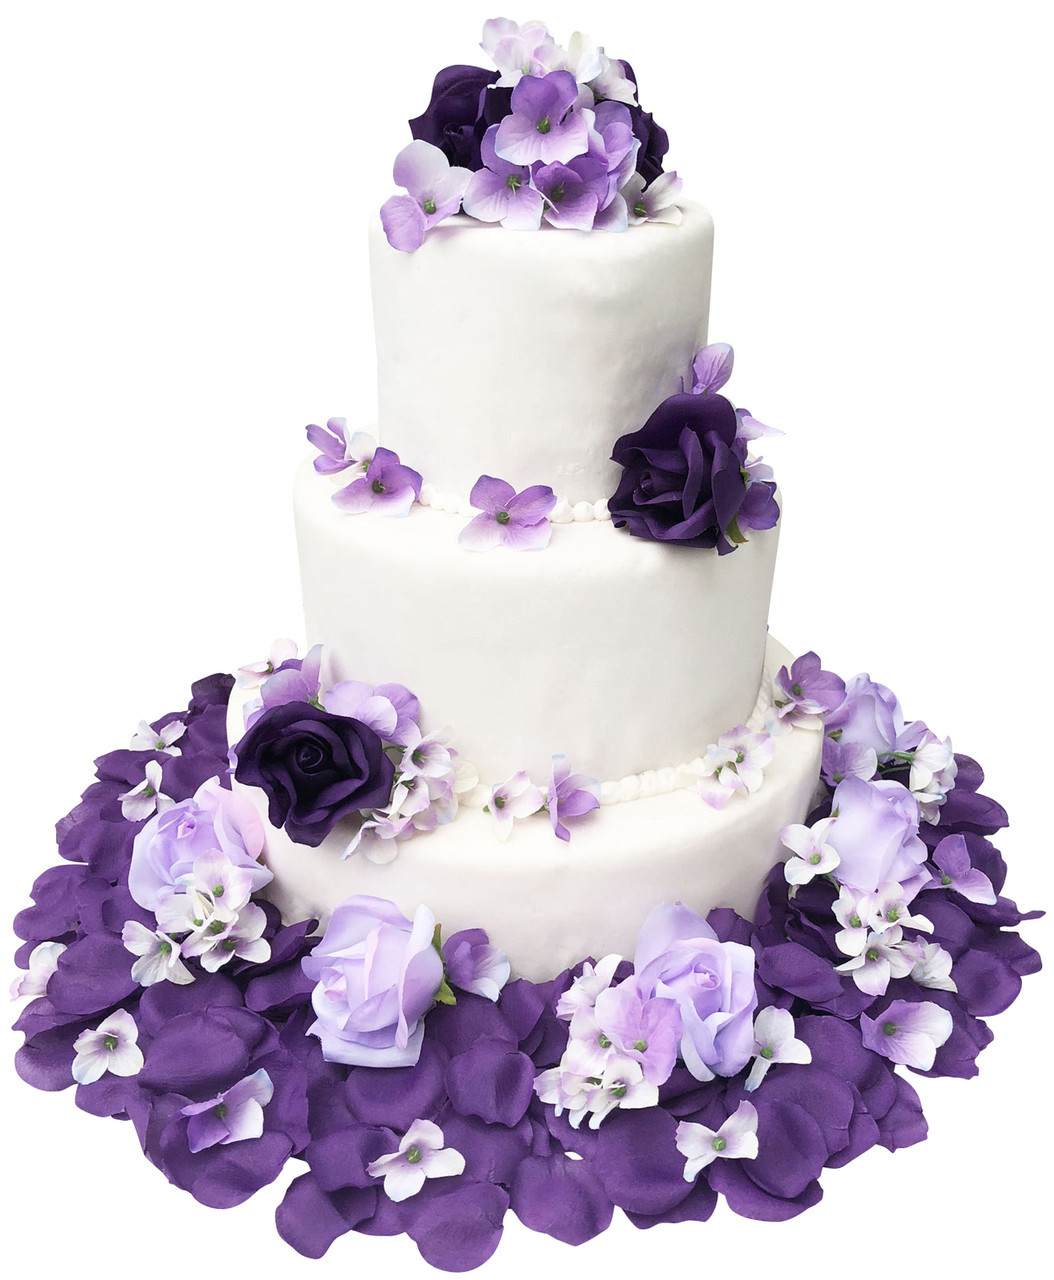 Purple Lavender Rose Hydrangea Rose Flower Cake Toppers Silk Flowers For Cake Wedding Cake Flowers Decorations Beautiful Wedding Cakes With Flowers Thebridesbouquet Com